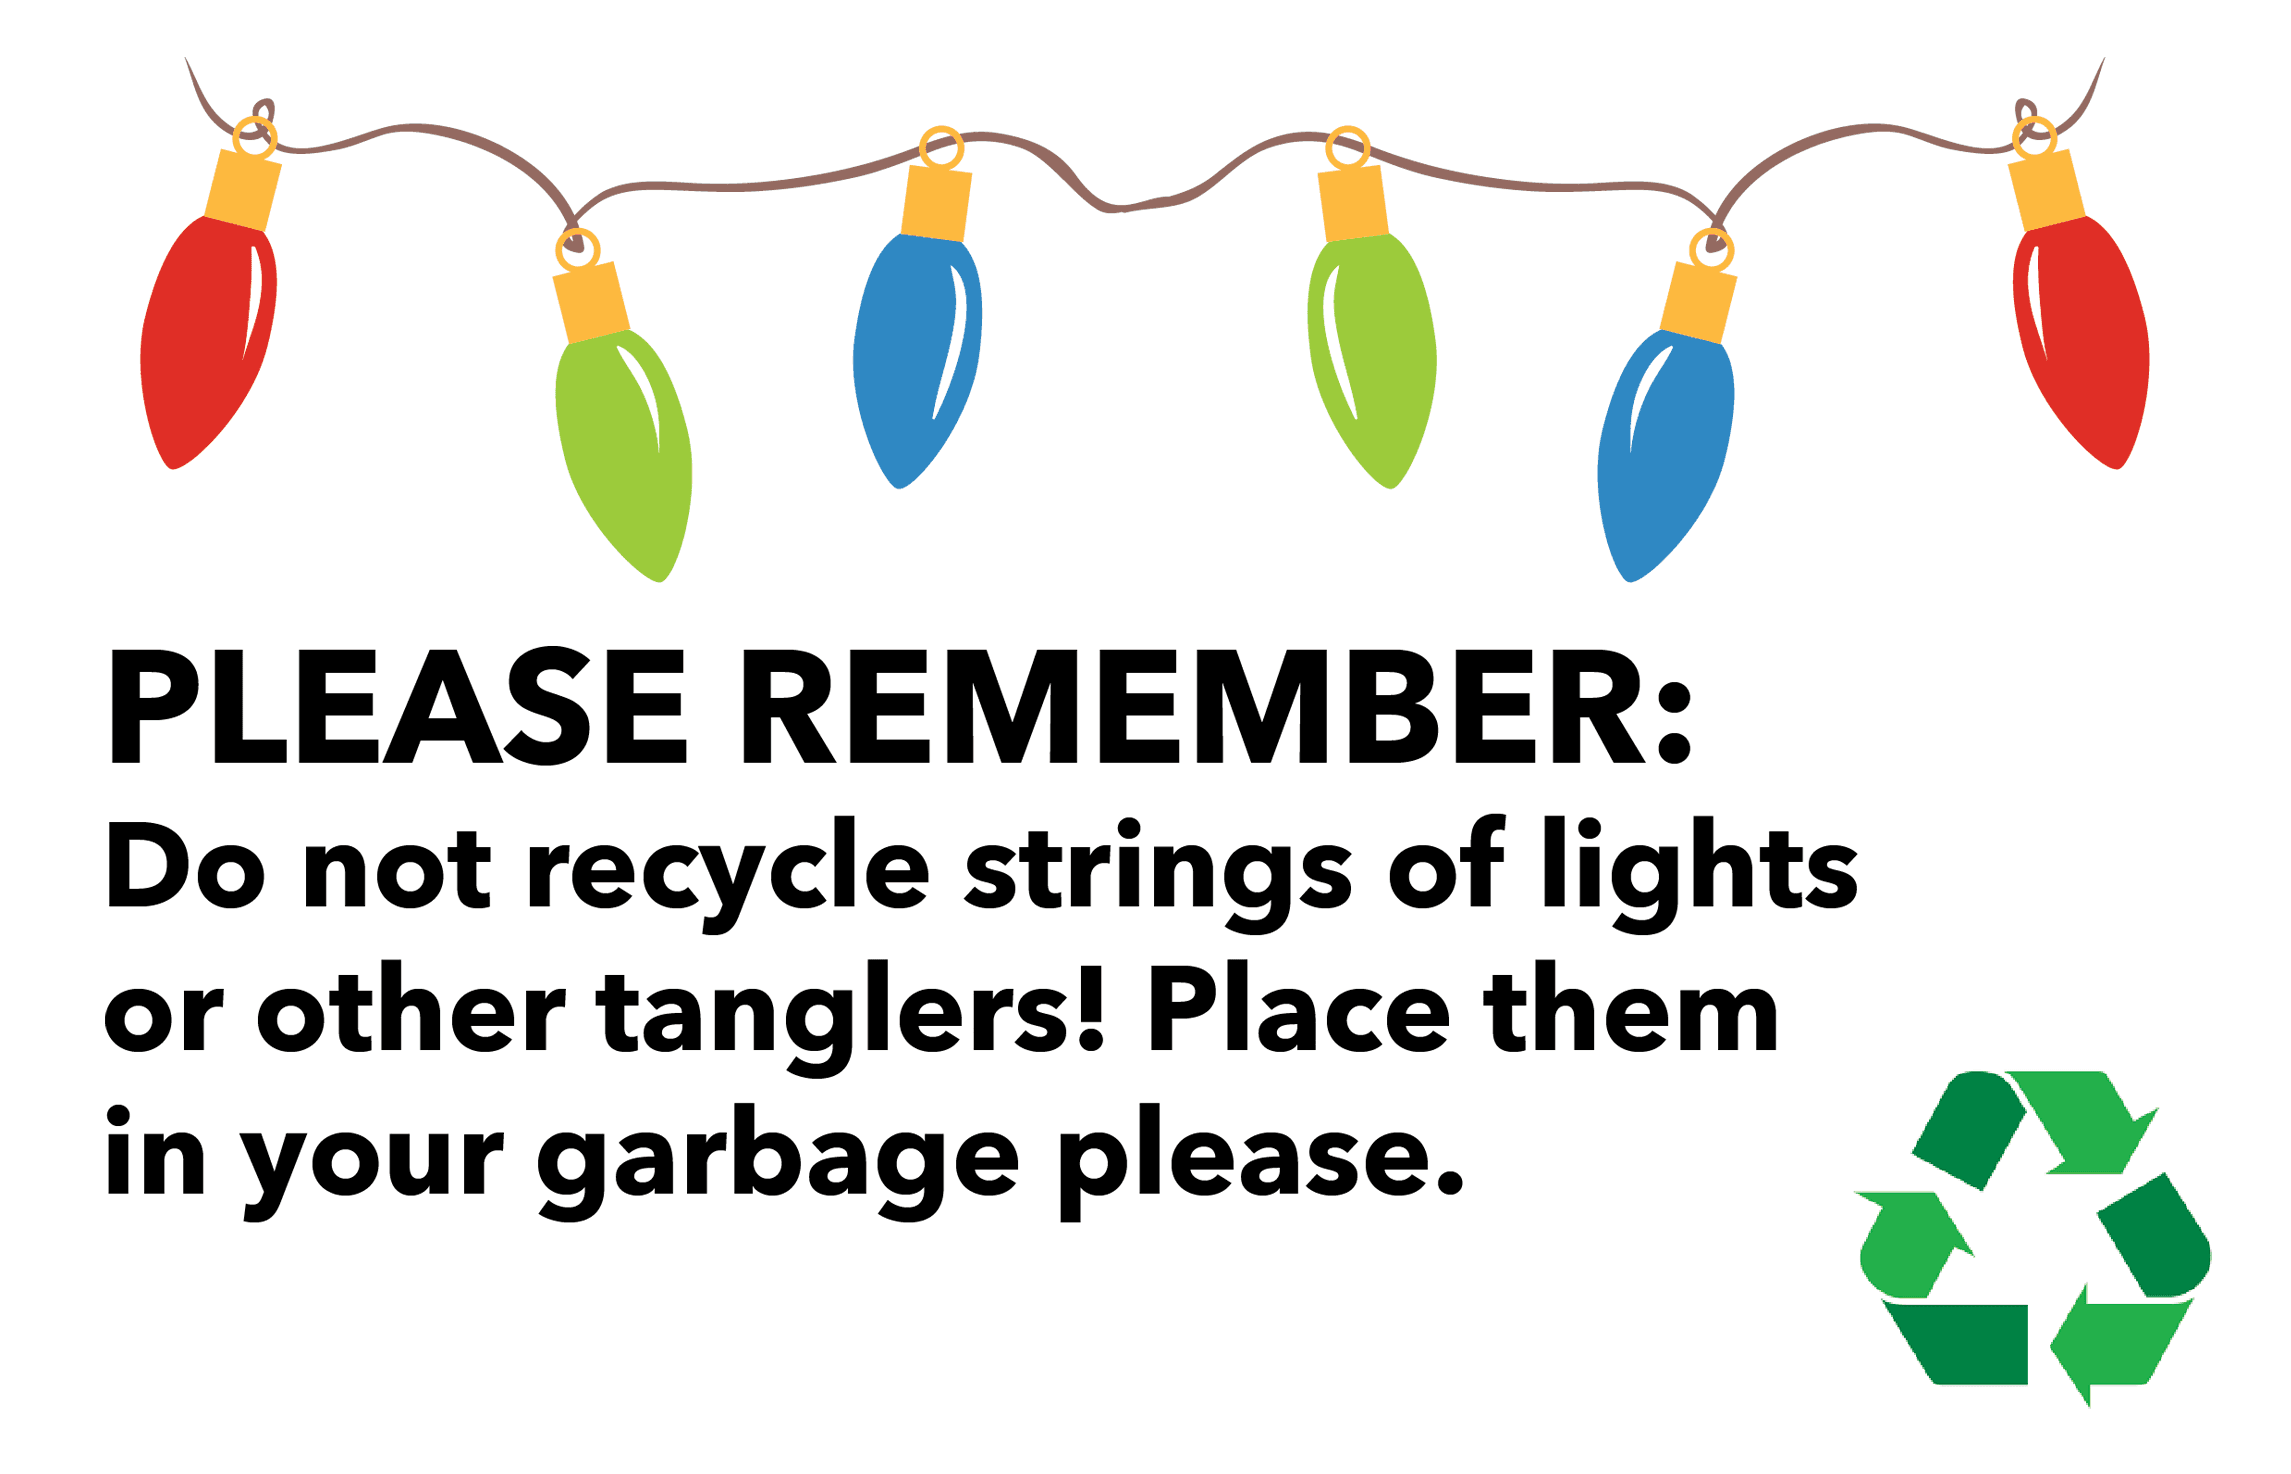 RecycleChristmasLights